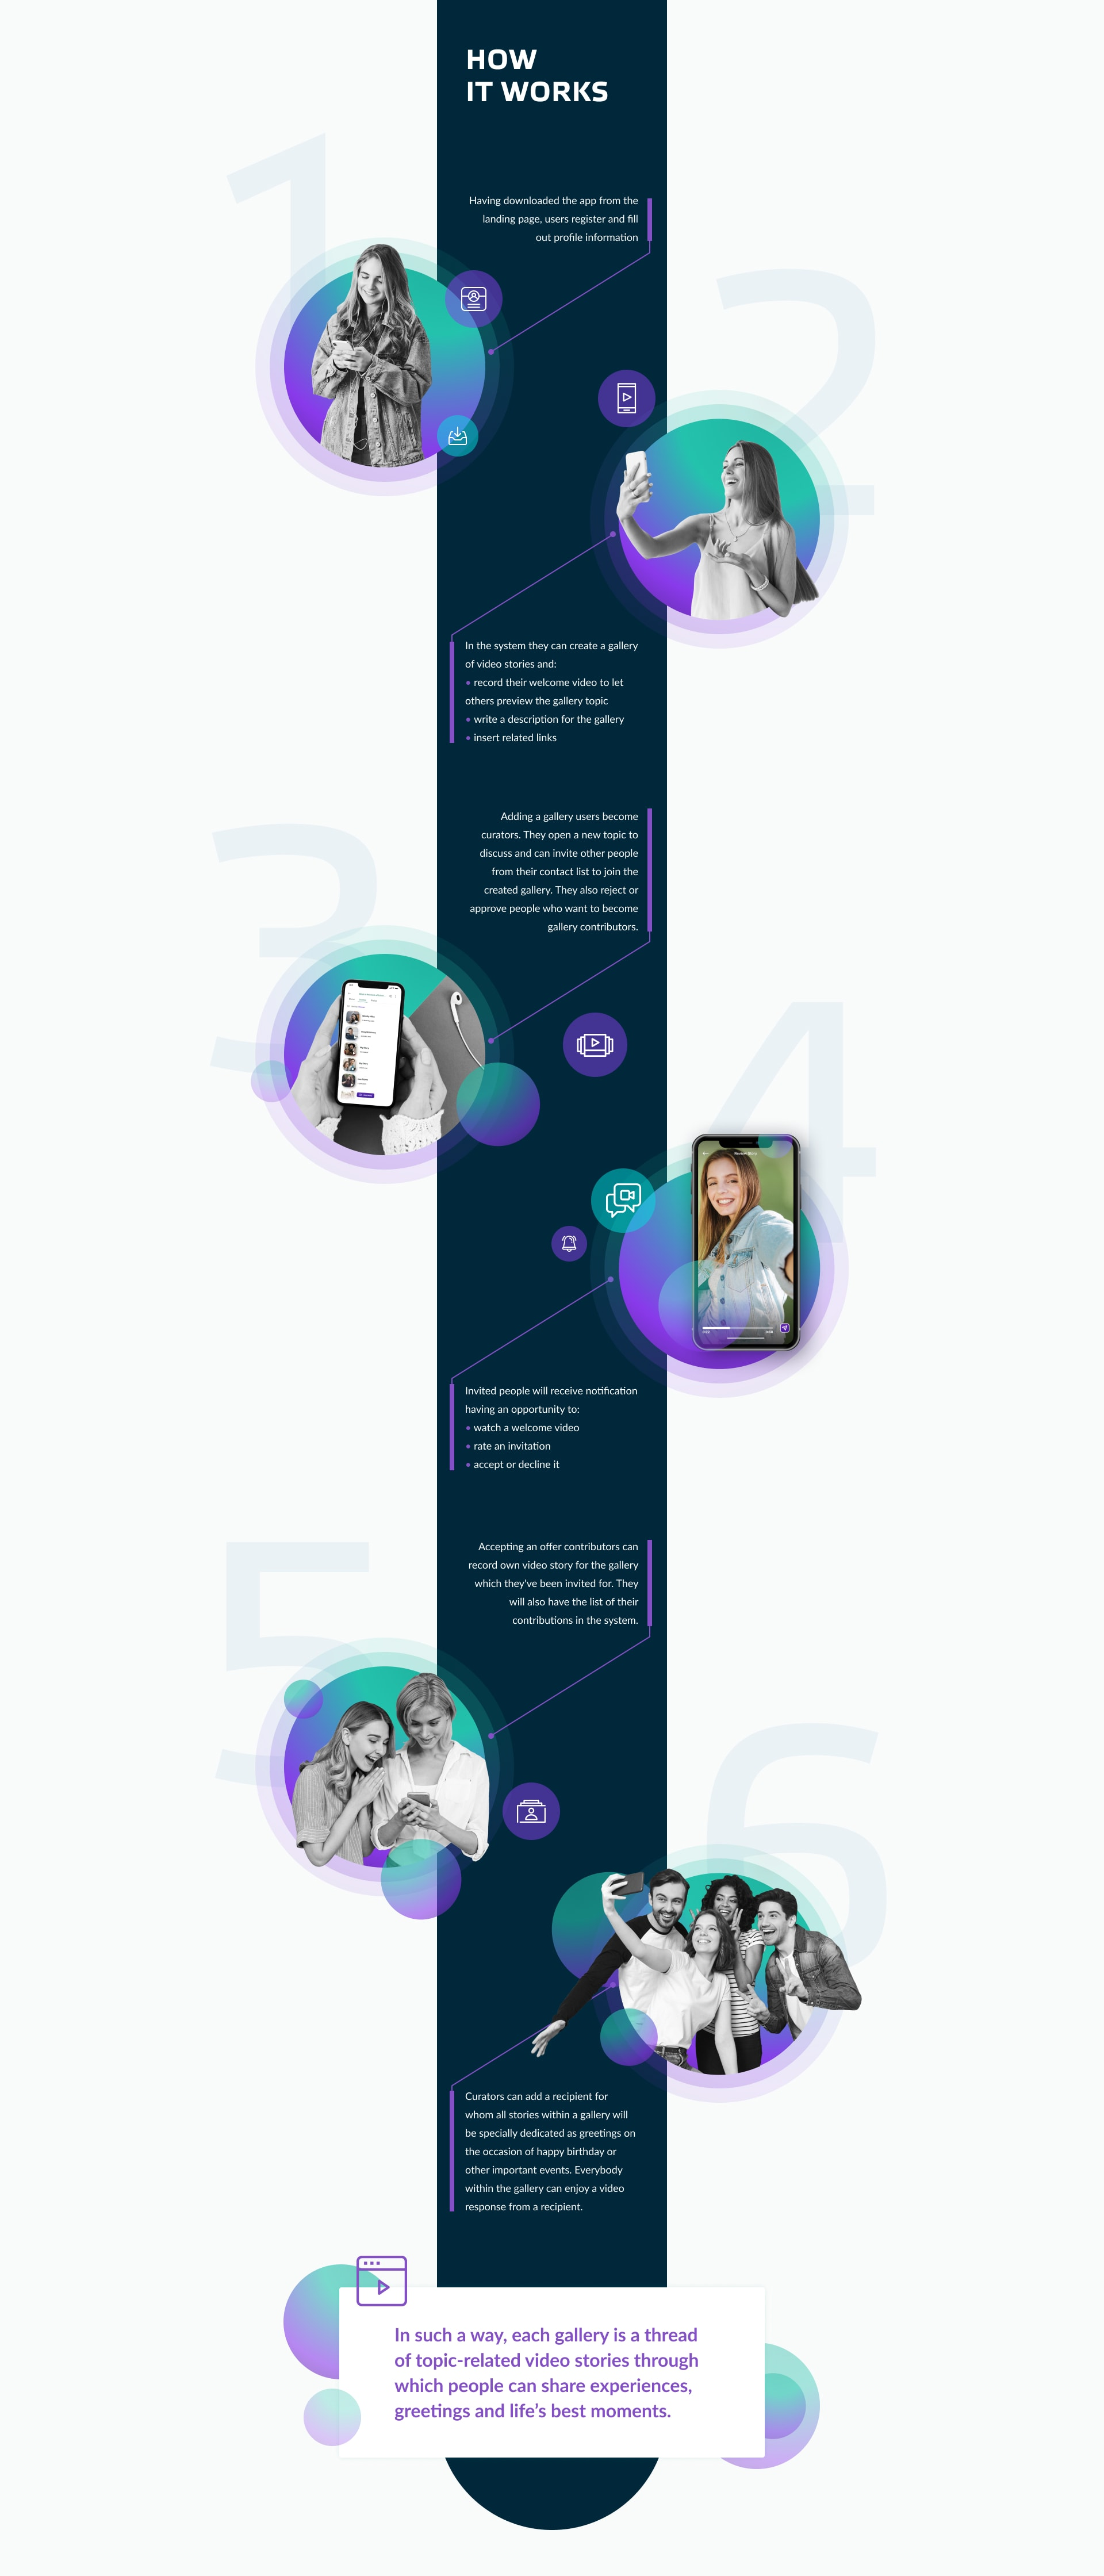 Video Sharing Solution for Social Networking